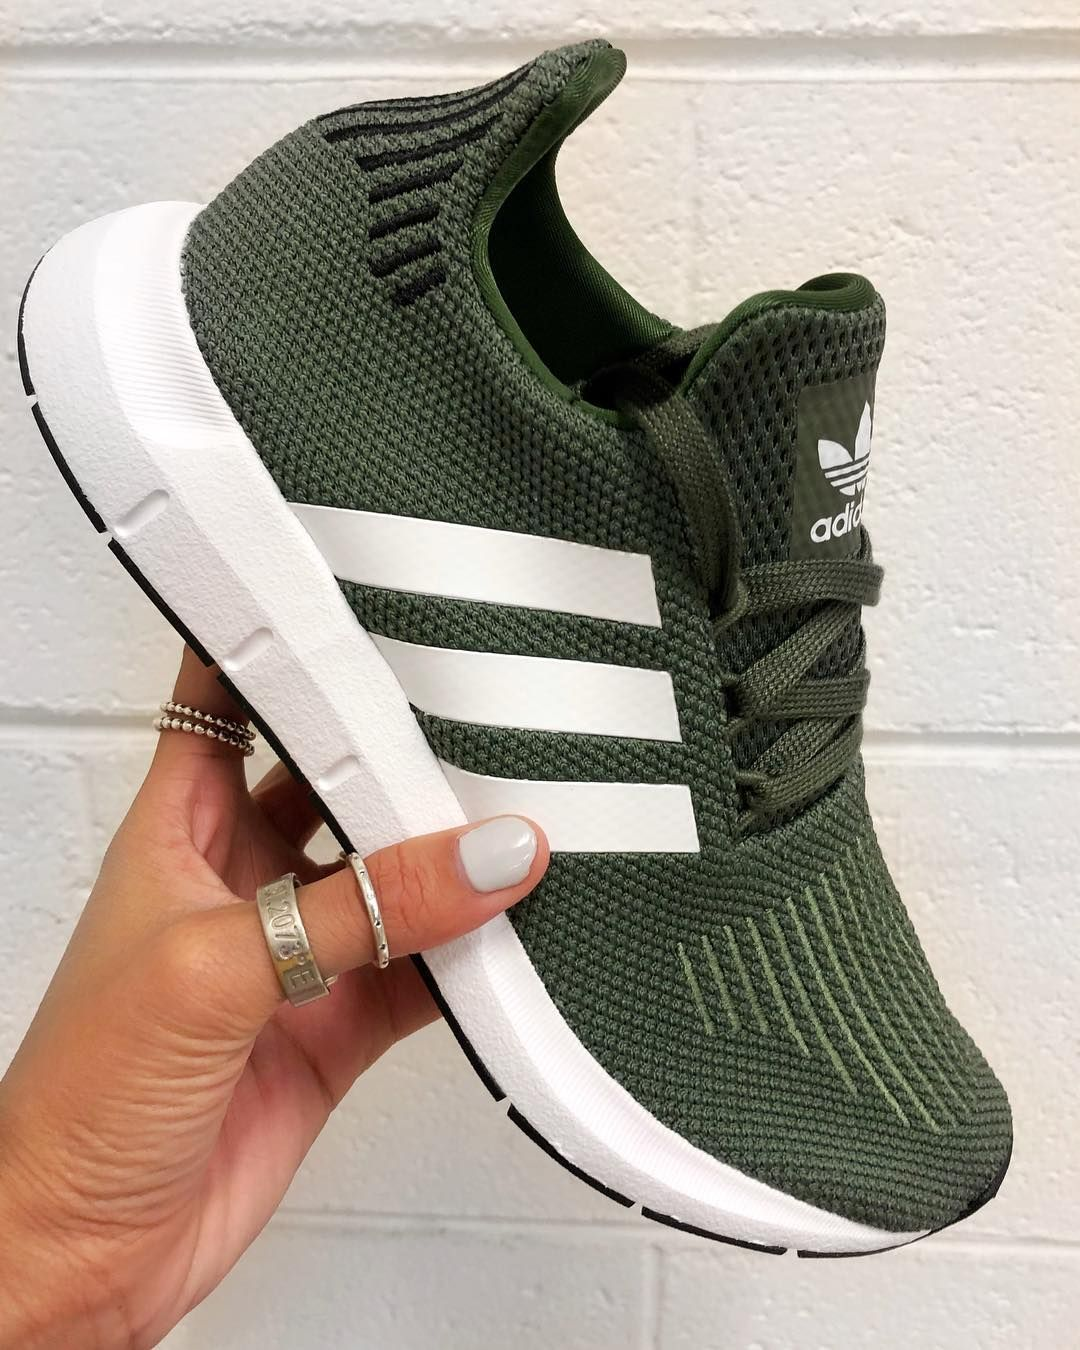 look good shoes sale lowest price later adidas Originals Swift Run - Green in 2019 | Adidas sneakers ...